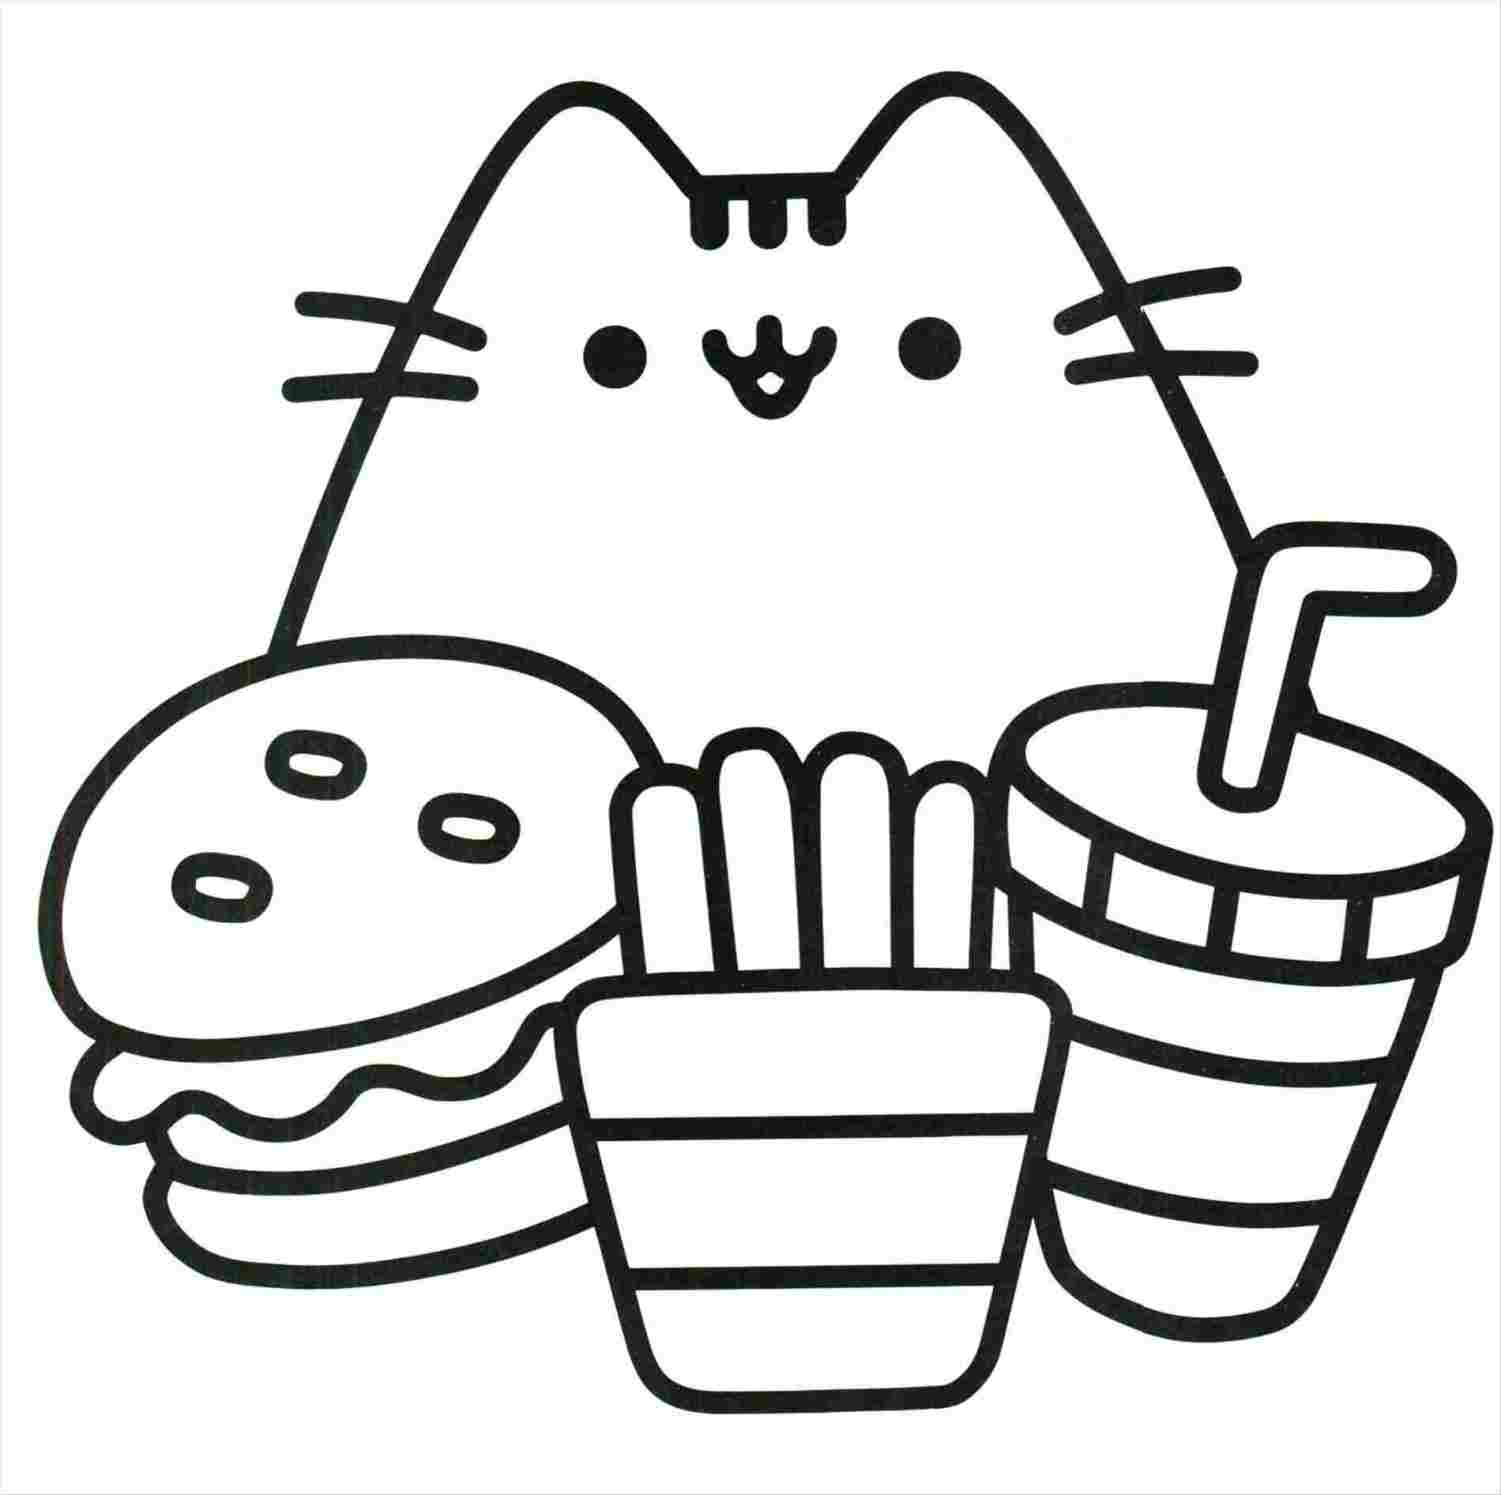 1501x1495 Cute Cat Drawing Pics